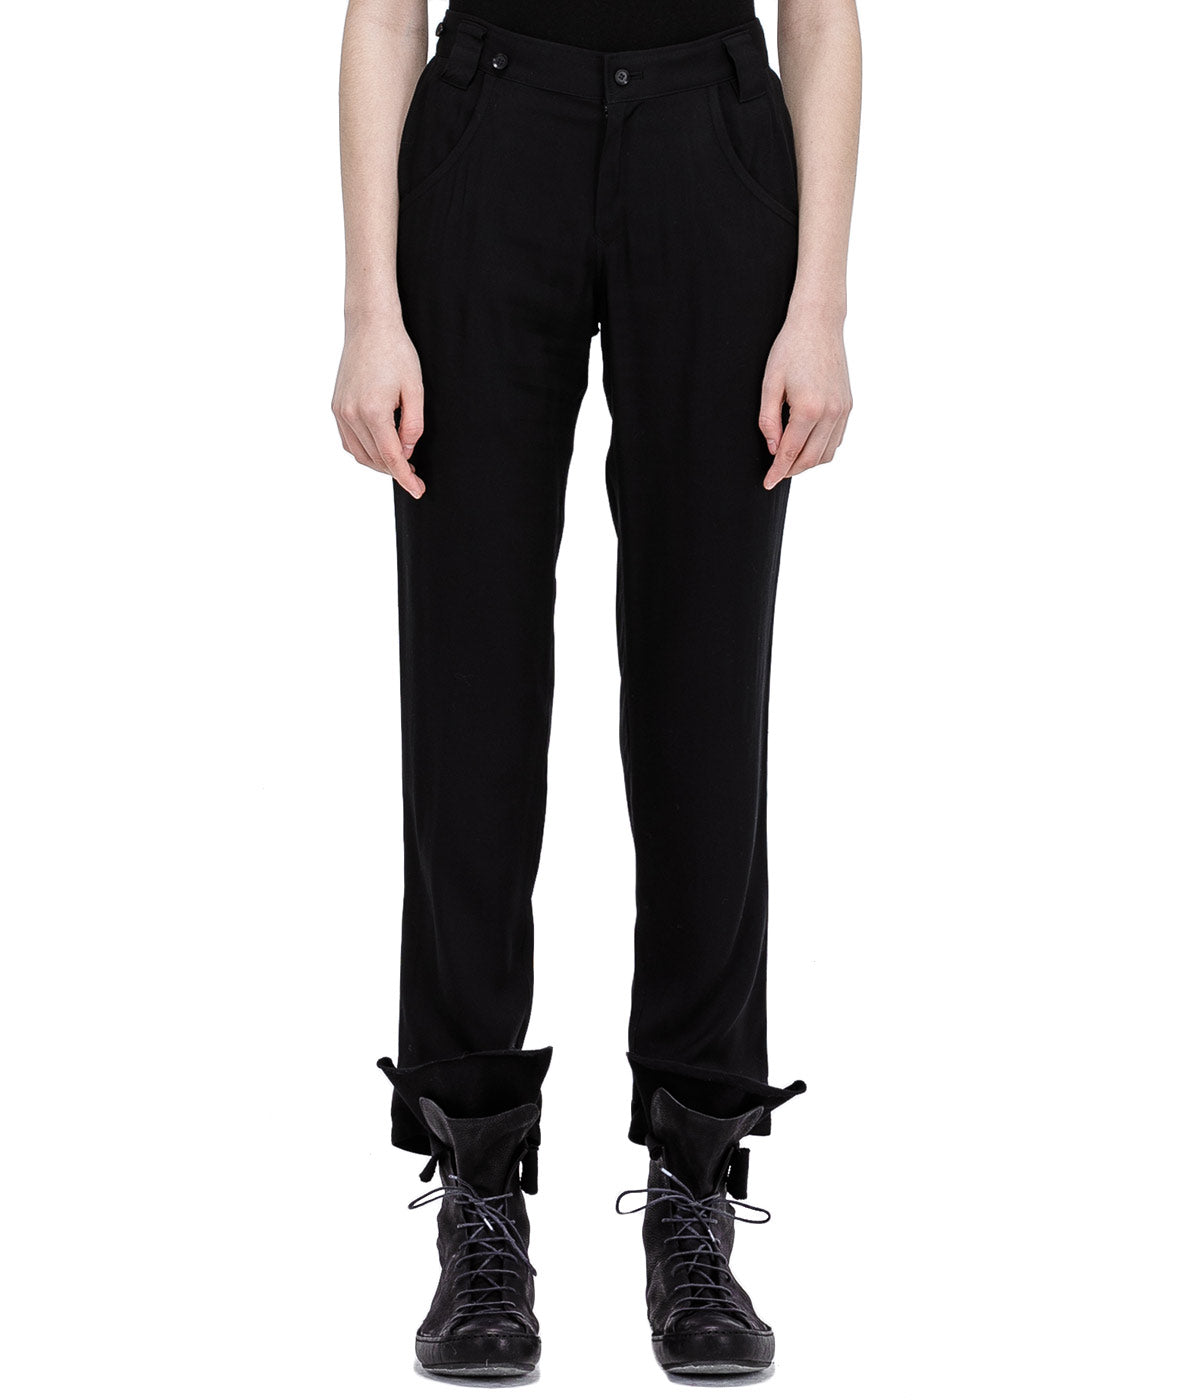 Black Basic Pants